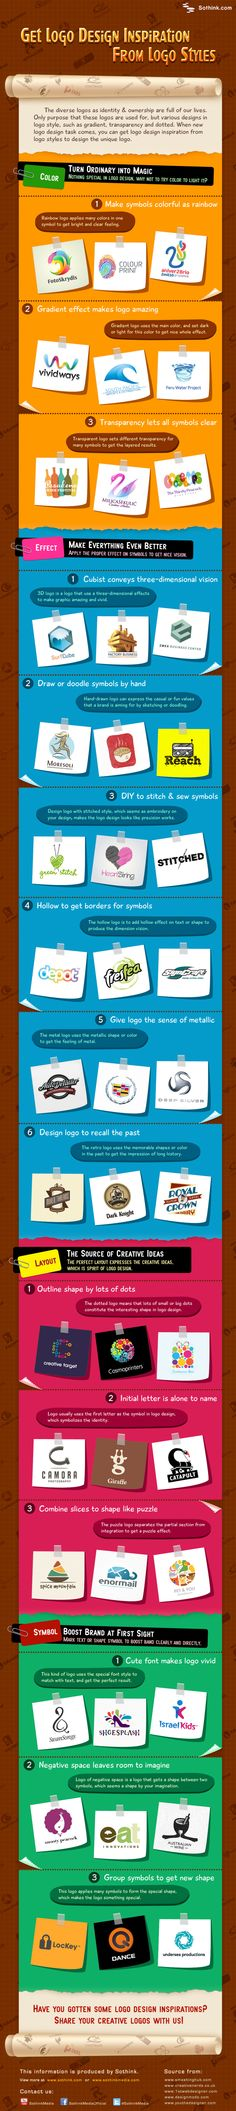 Getting Logo Inspiration | Infographic